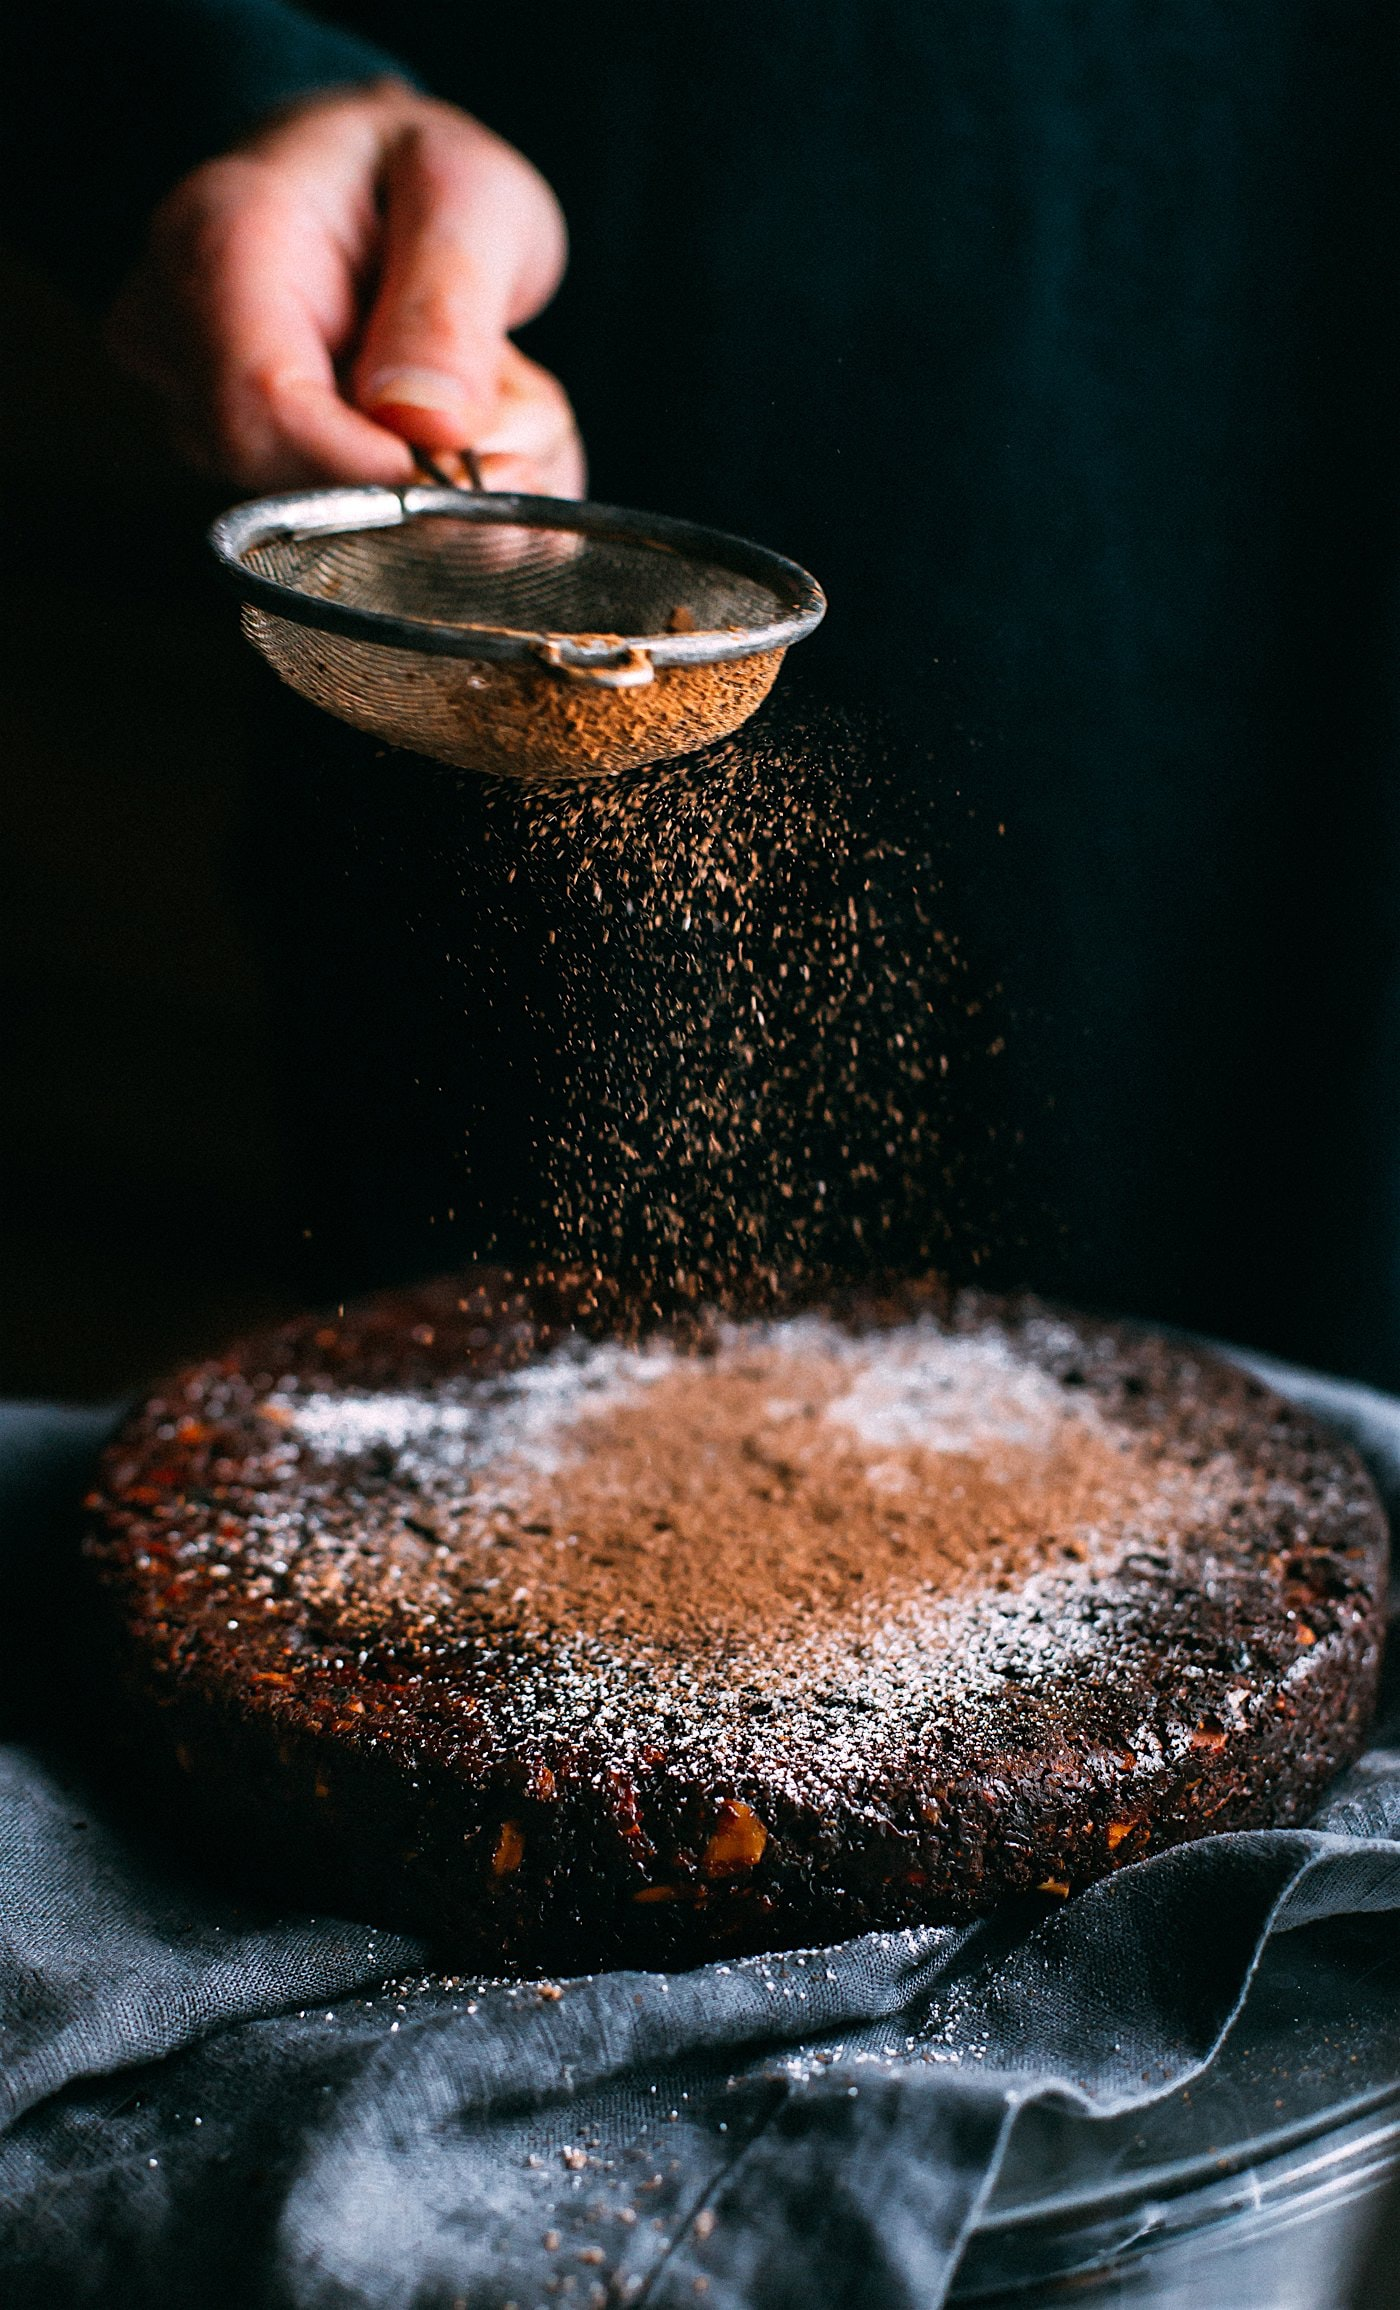 person pouring chocolate powder on cake